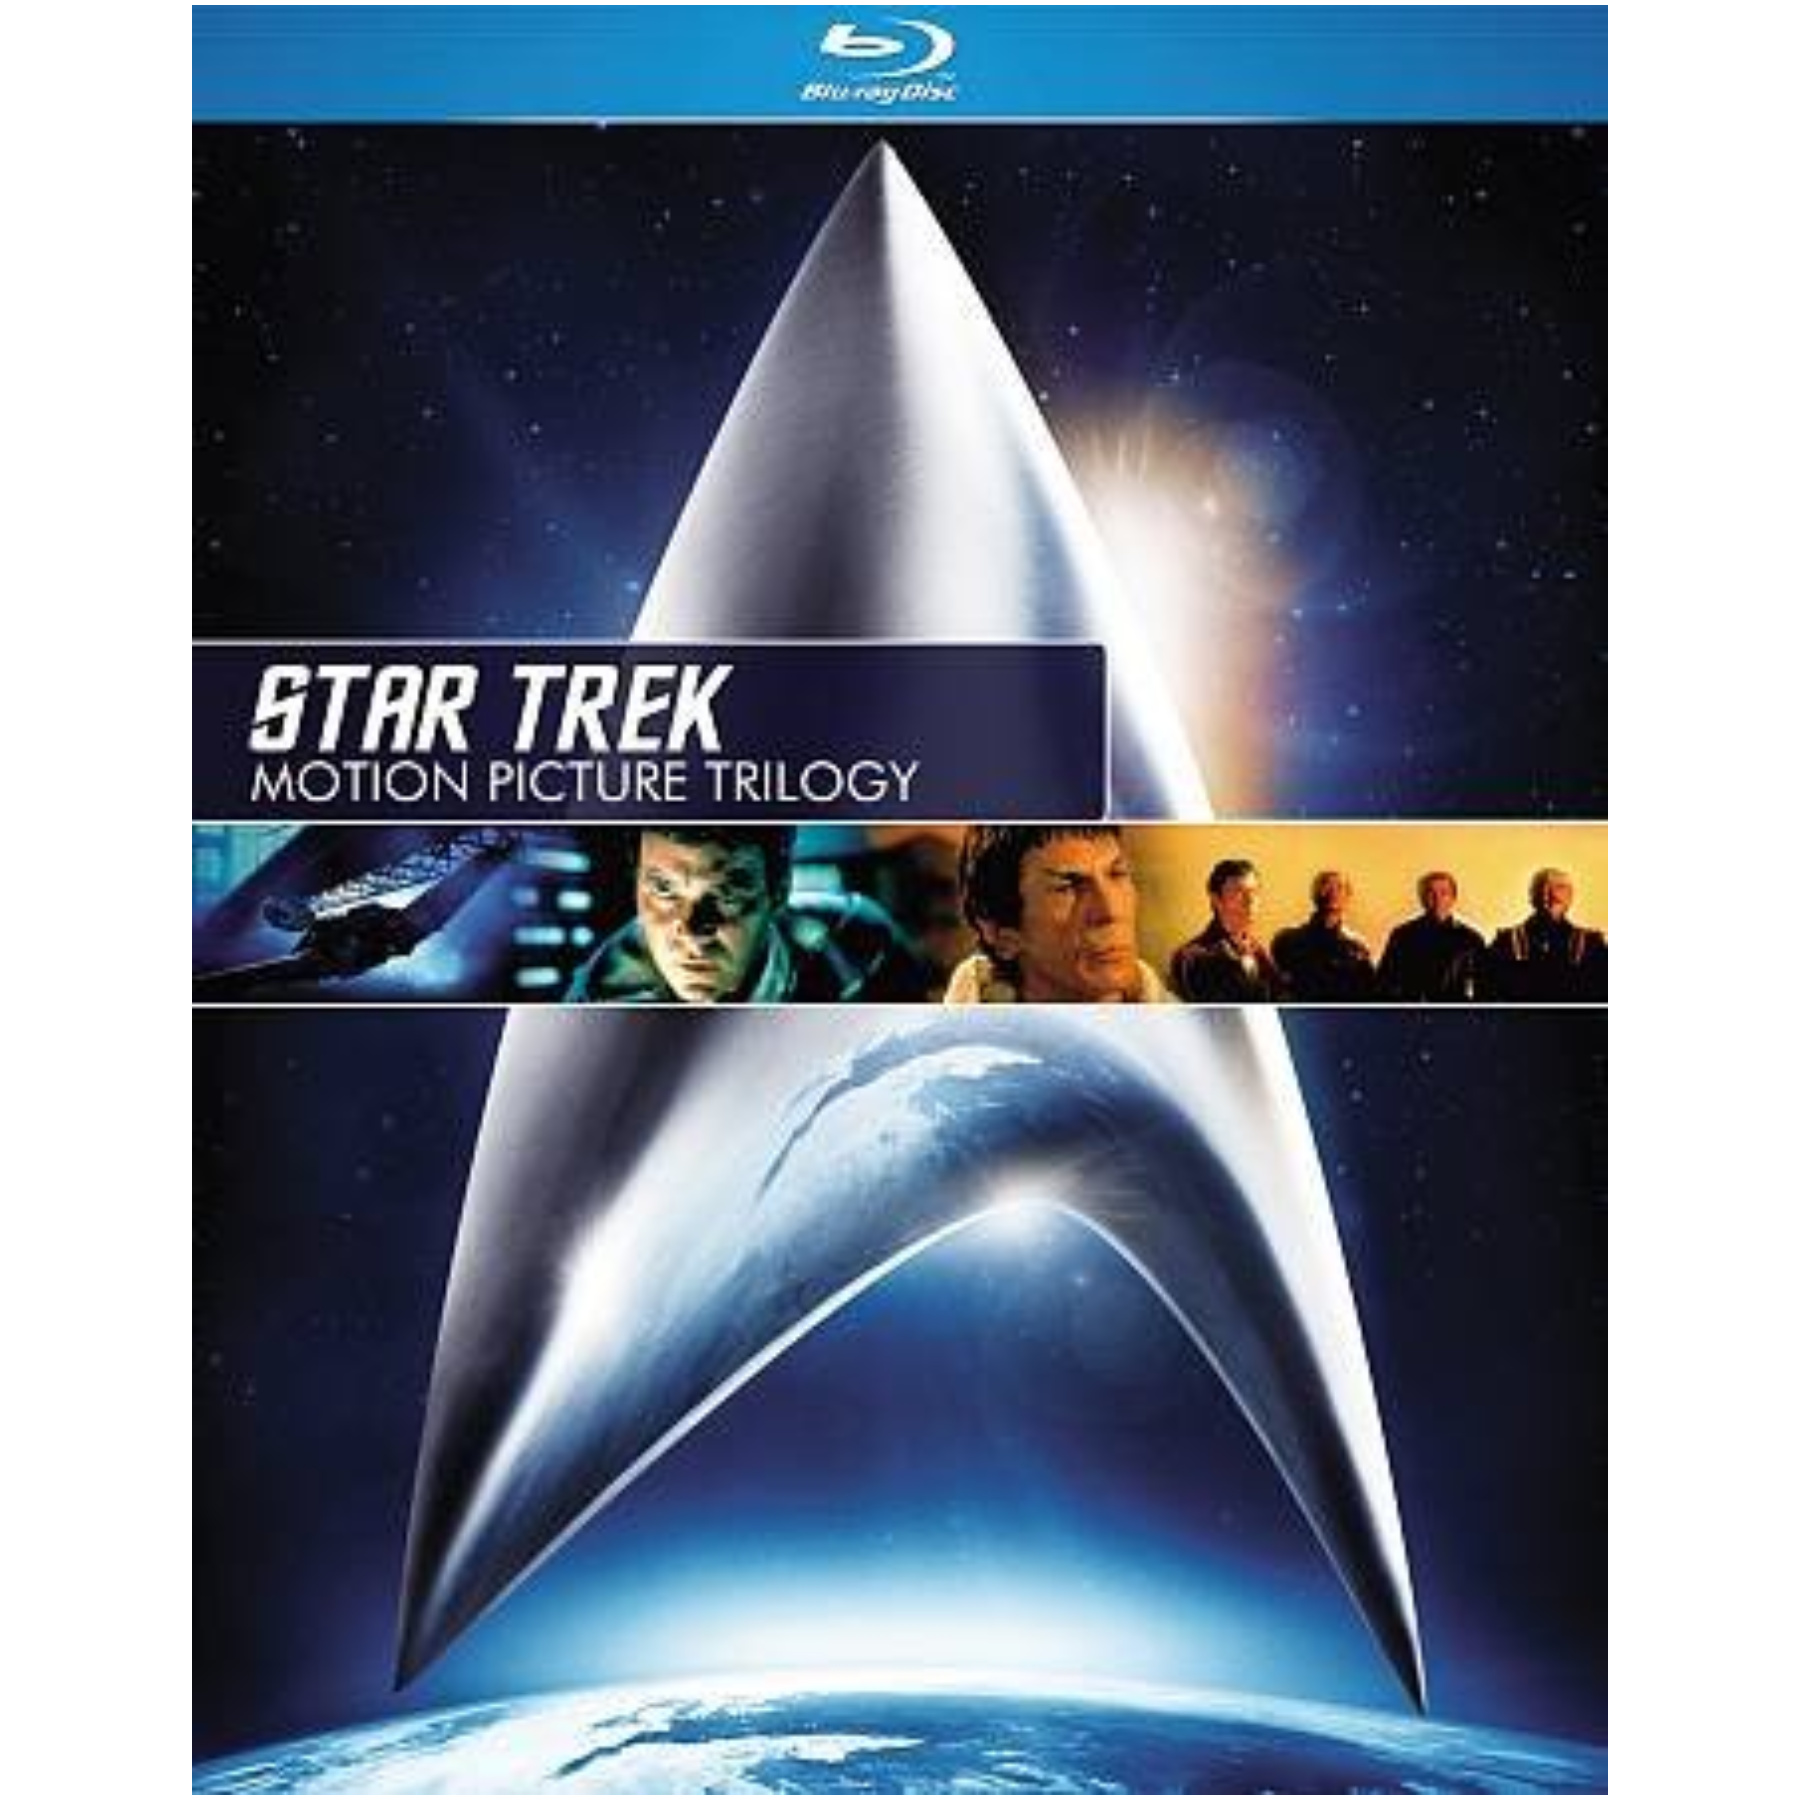 Star Trek-Motion Picture Trilogy Blu-Ray/3 Discs 097361427744